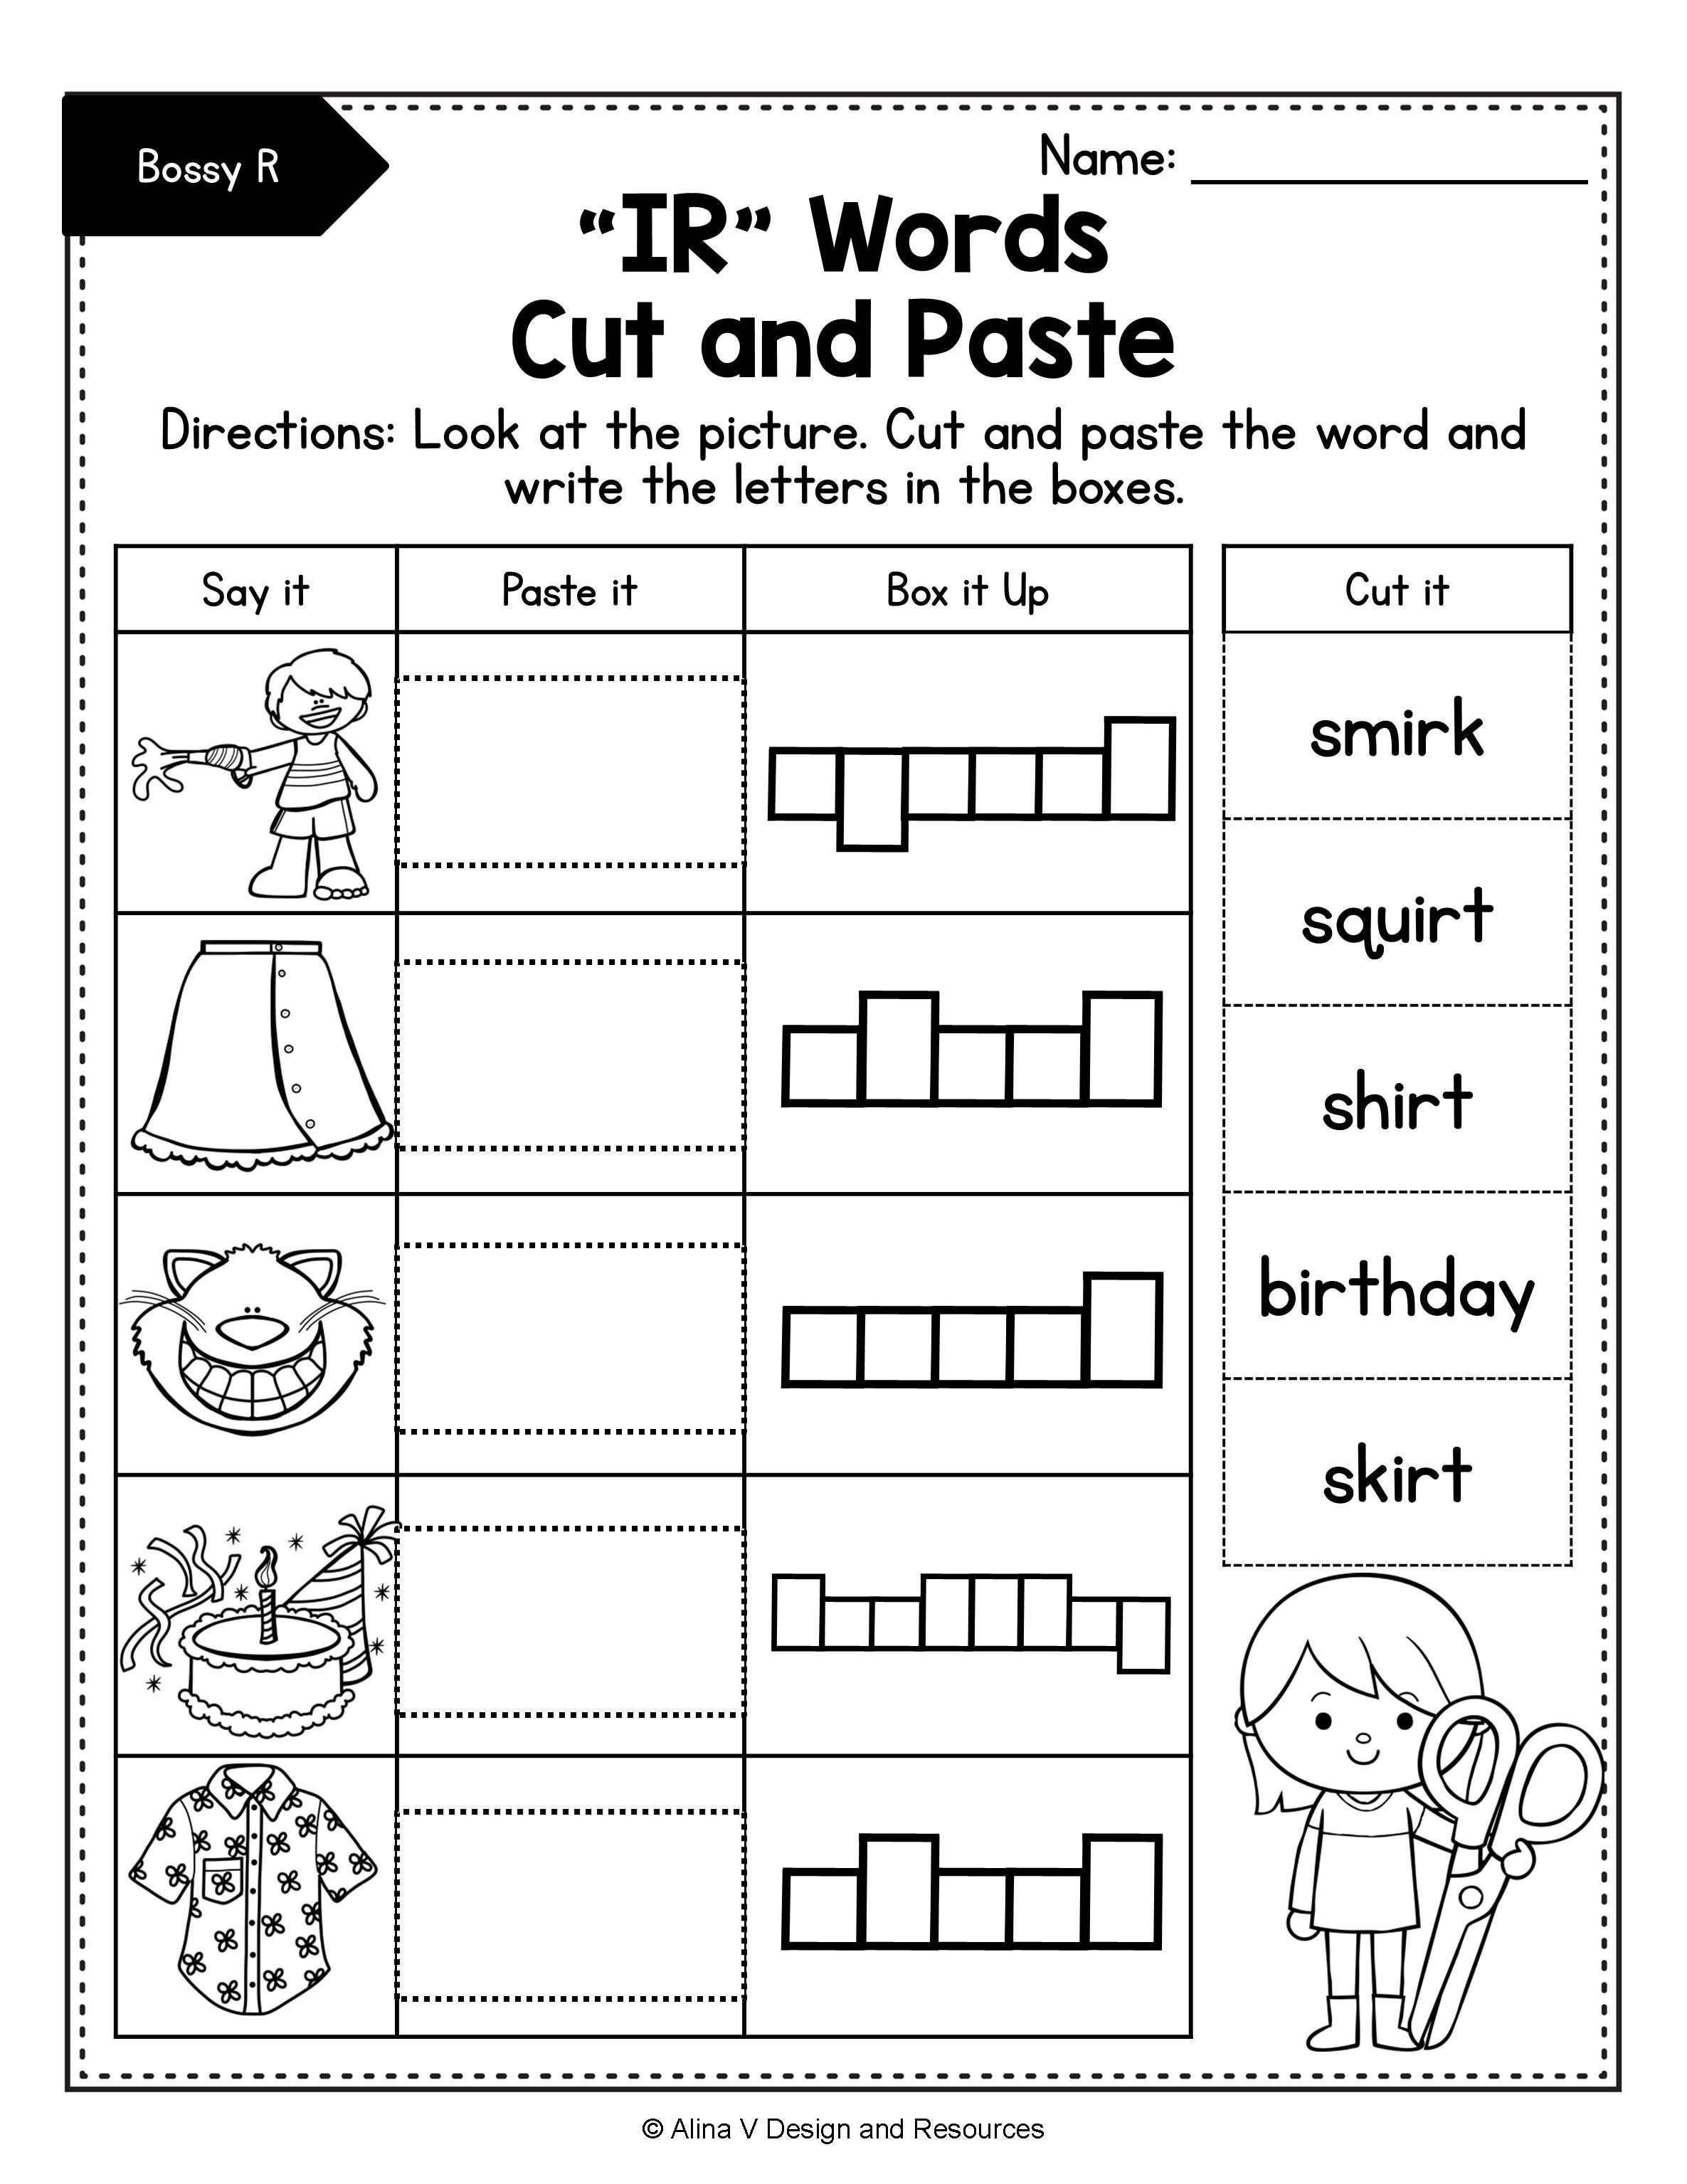 R Controlled Vowels Worksheets Mega Bundle Bossy R Distance Learning In 2020 Vowel Worksheets Phonics Activities Teaching Vowels